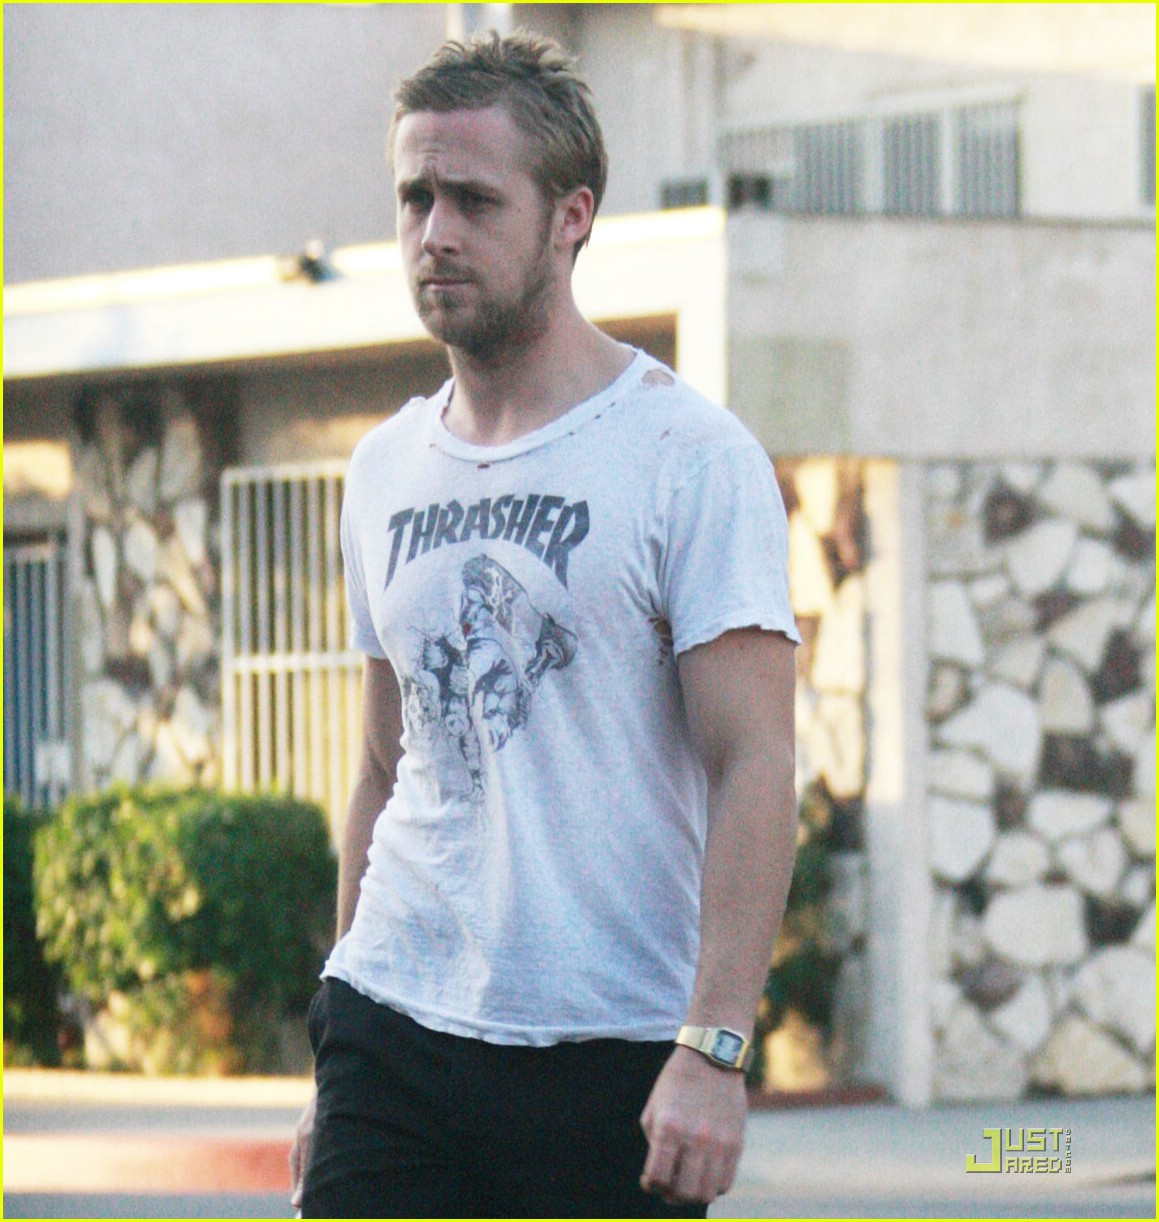 ryan gosling hole in shirt 021546291